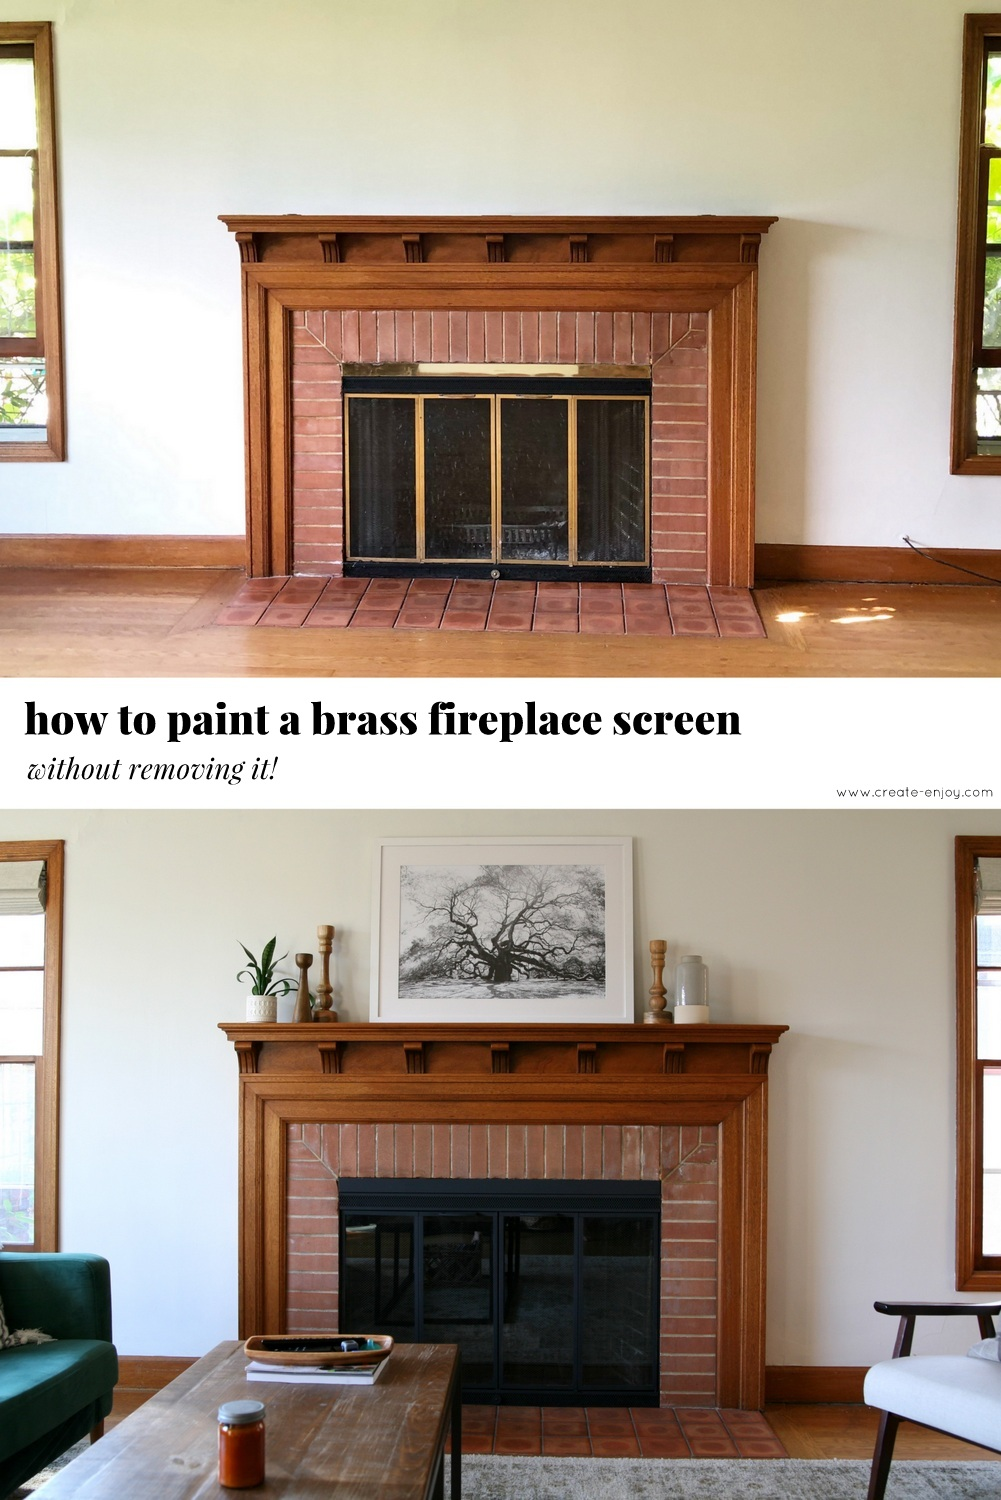 Brass Fireplace Screen How To Paint A Brass Fireplace Screen Without Removing It